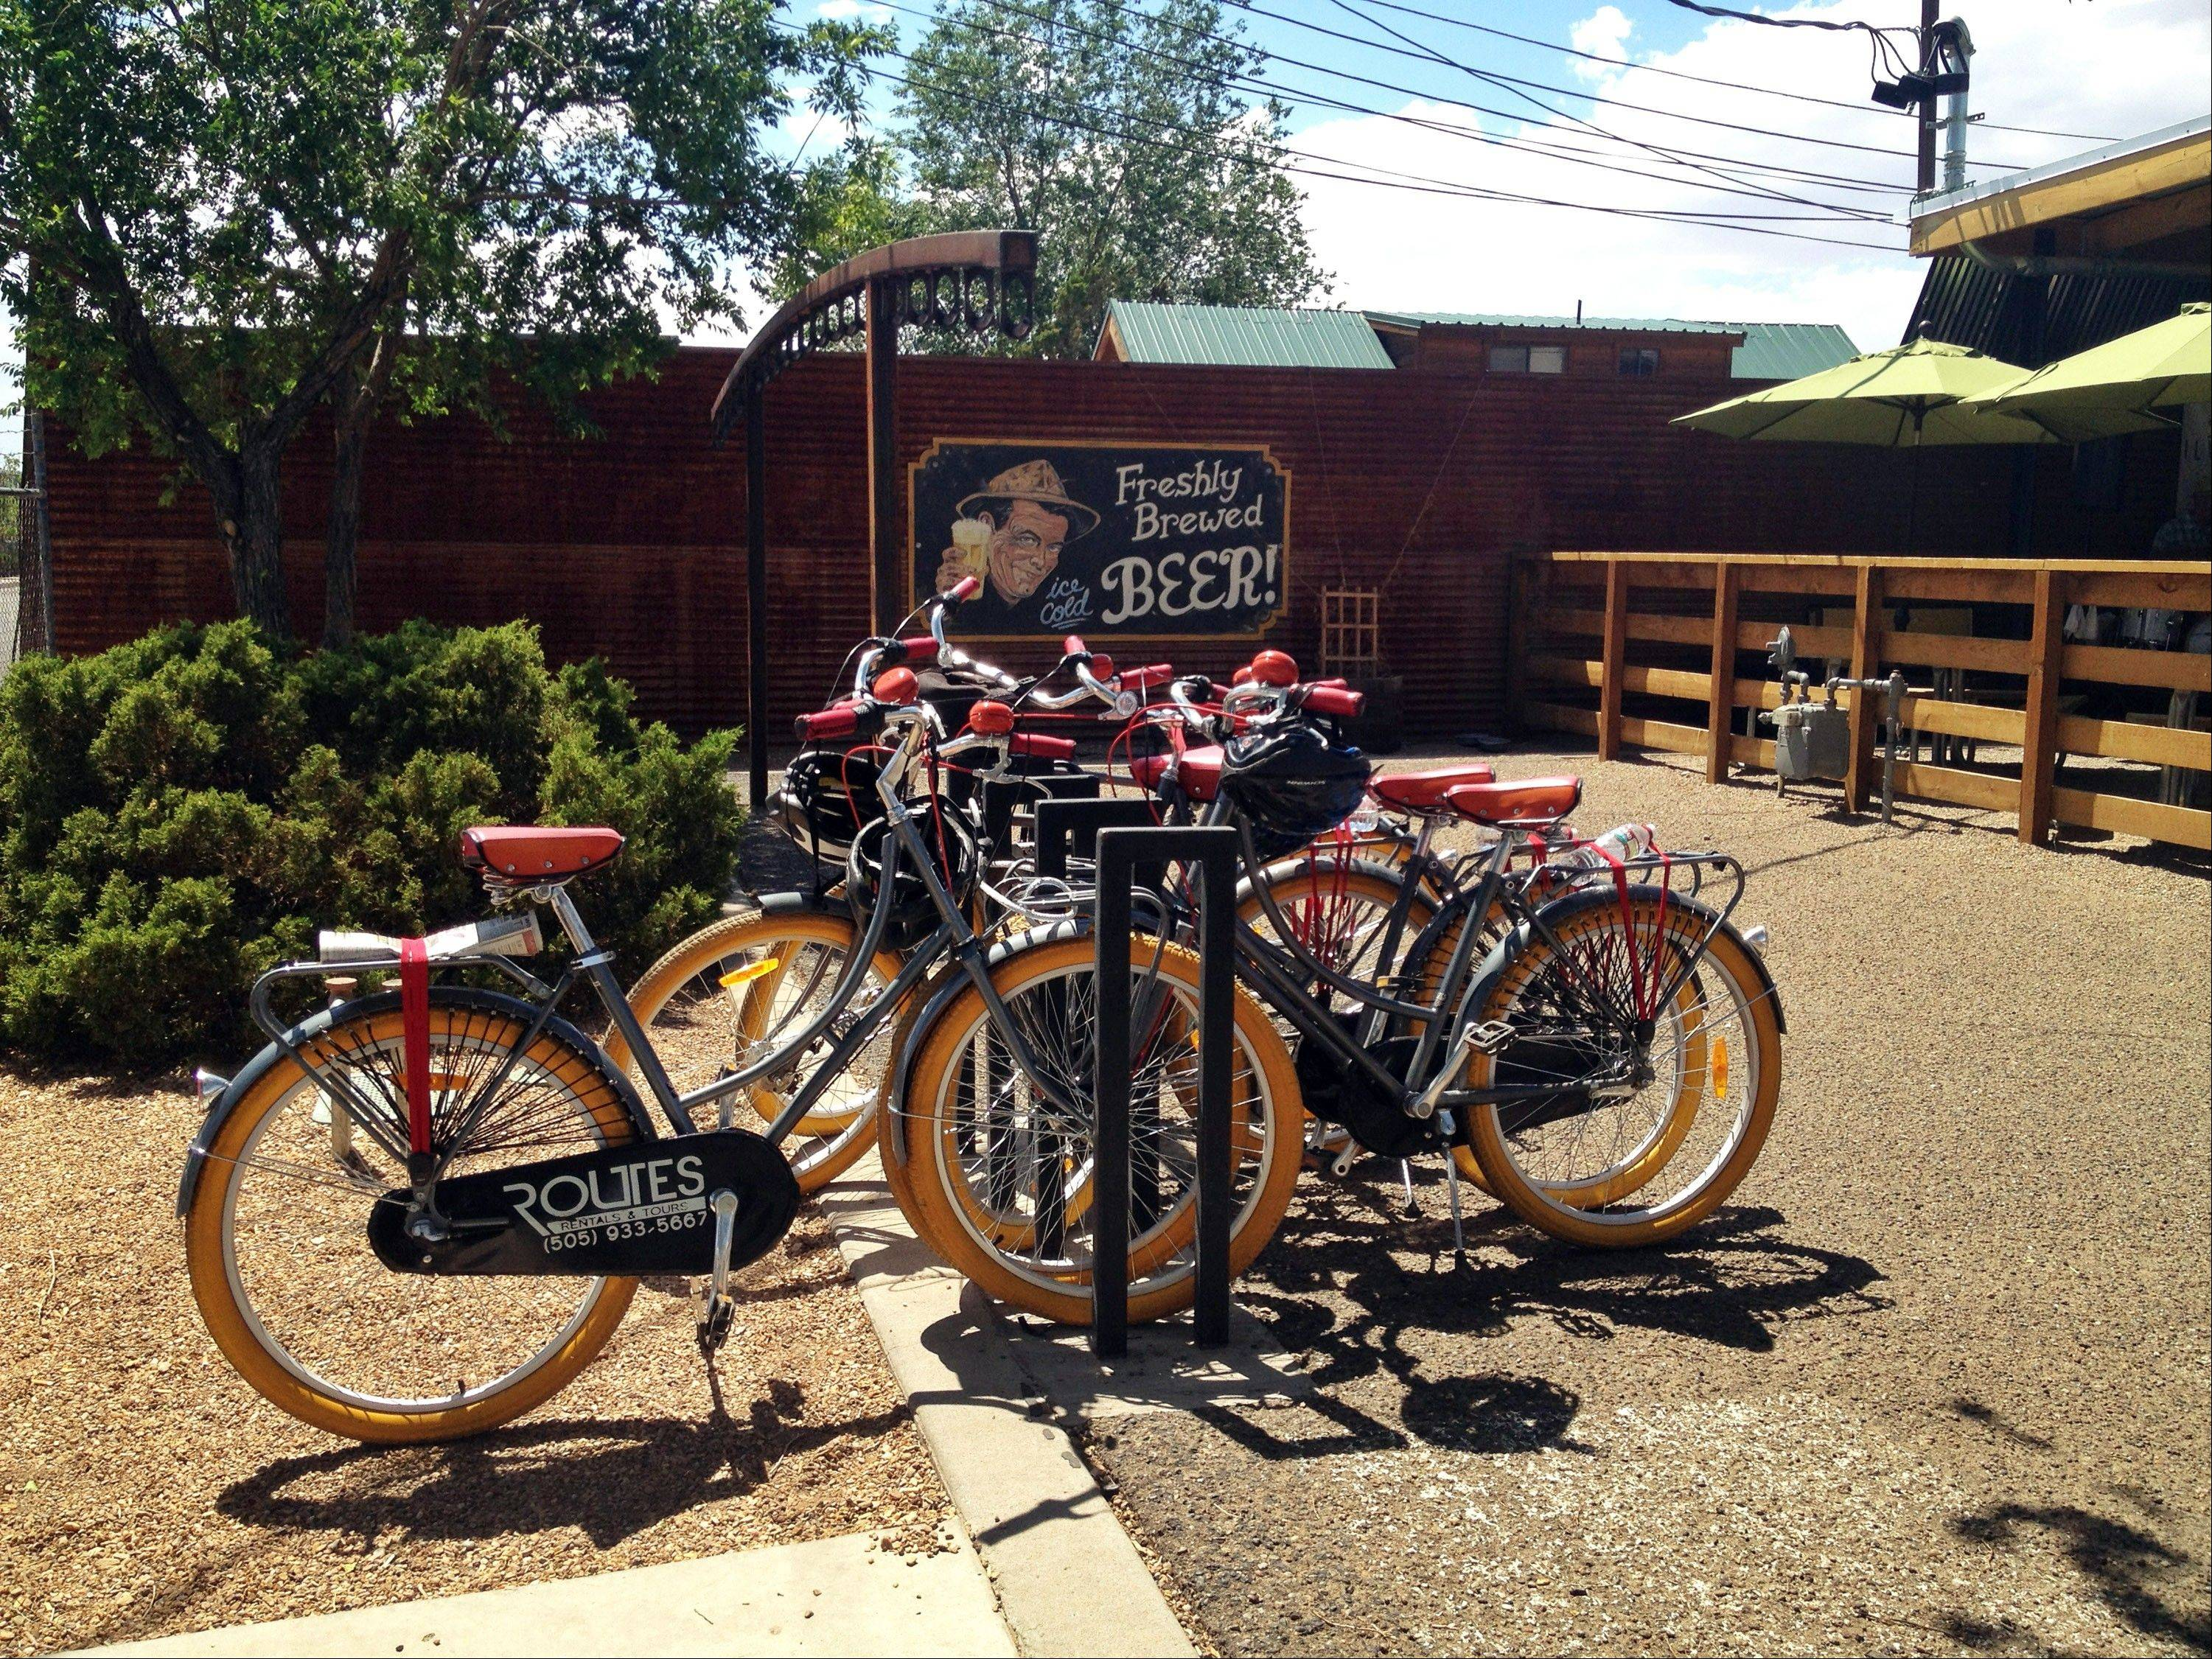 Bikes are parked outside of Il Vicino Canteen in Albuquerque, N.M., while the cyclists go on a brewery tour. Bike tours that take beer-lovers to visit craft breweries are offered around the country.